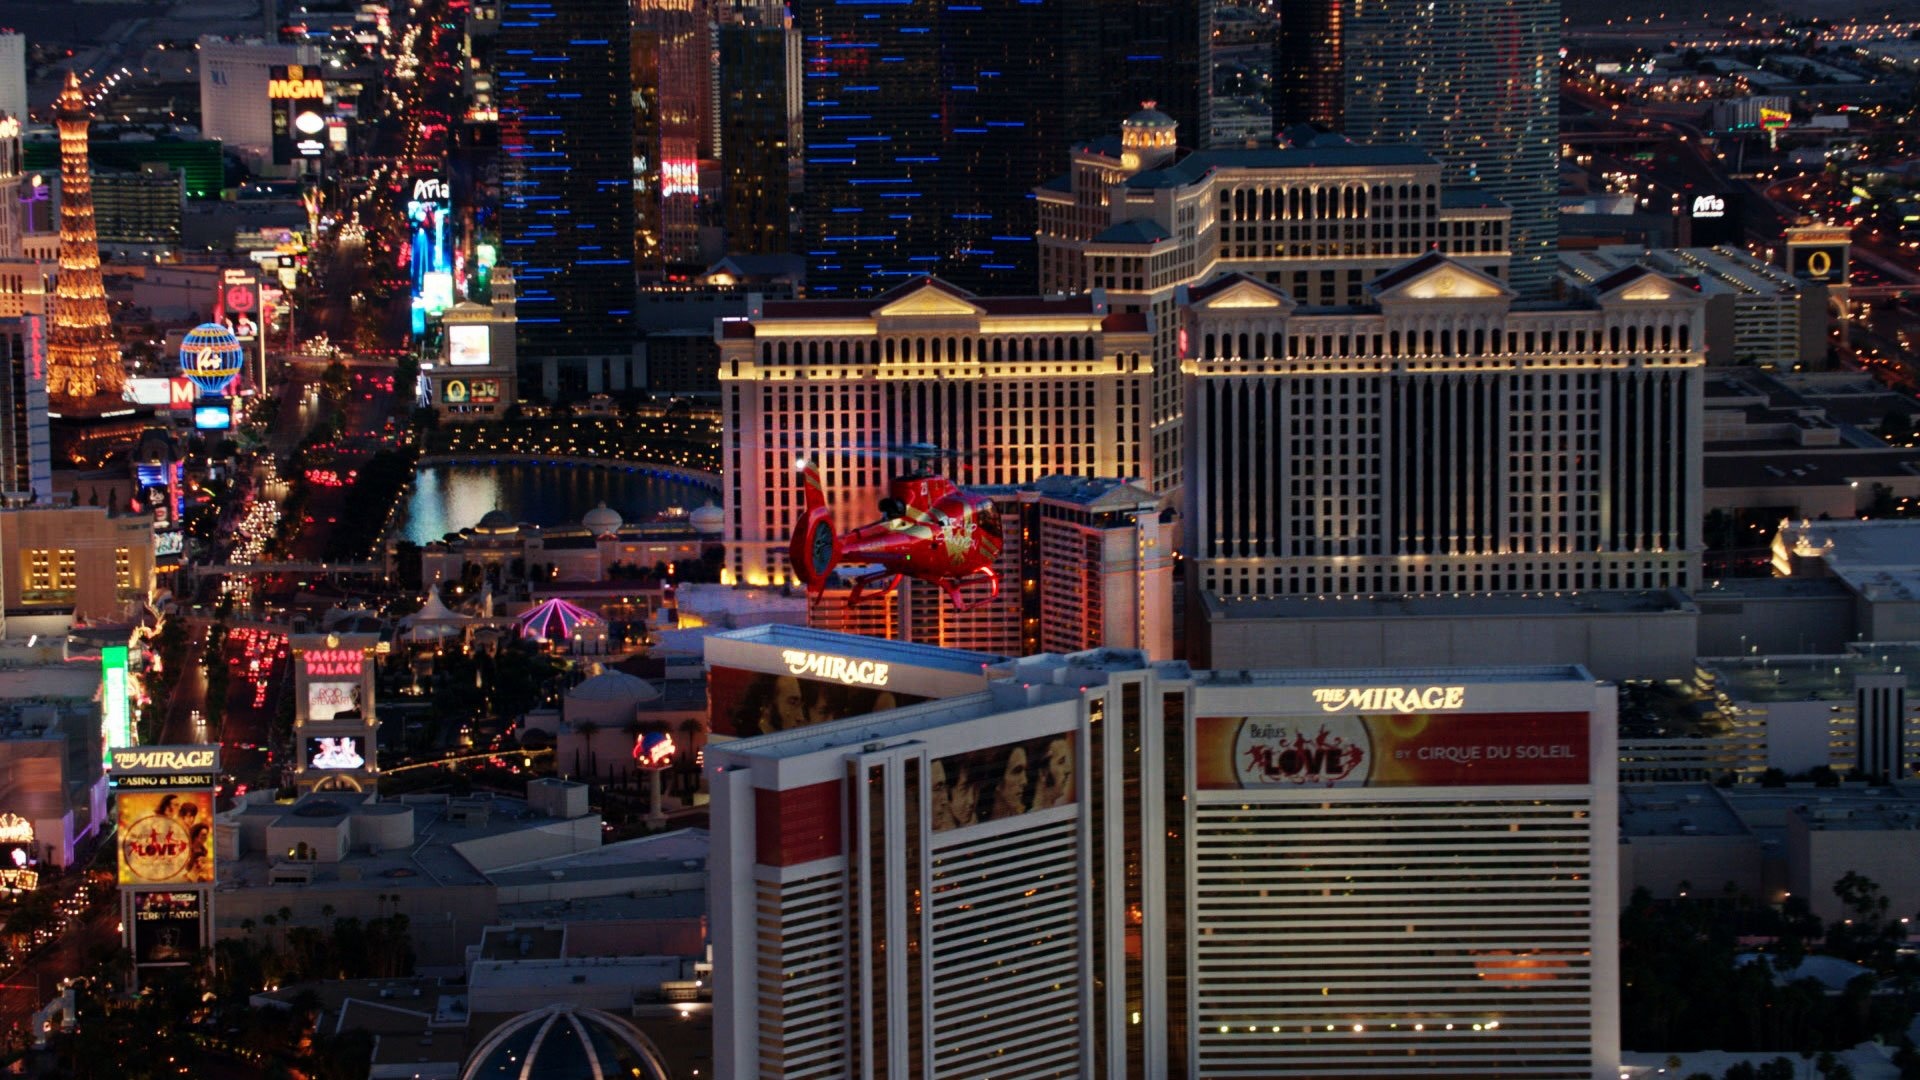 A helicopter tour over the Las Vegas Strip at nighttime.